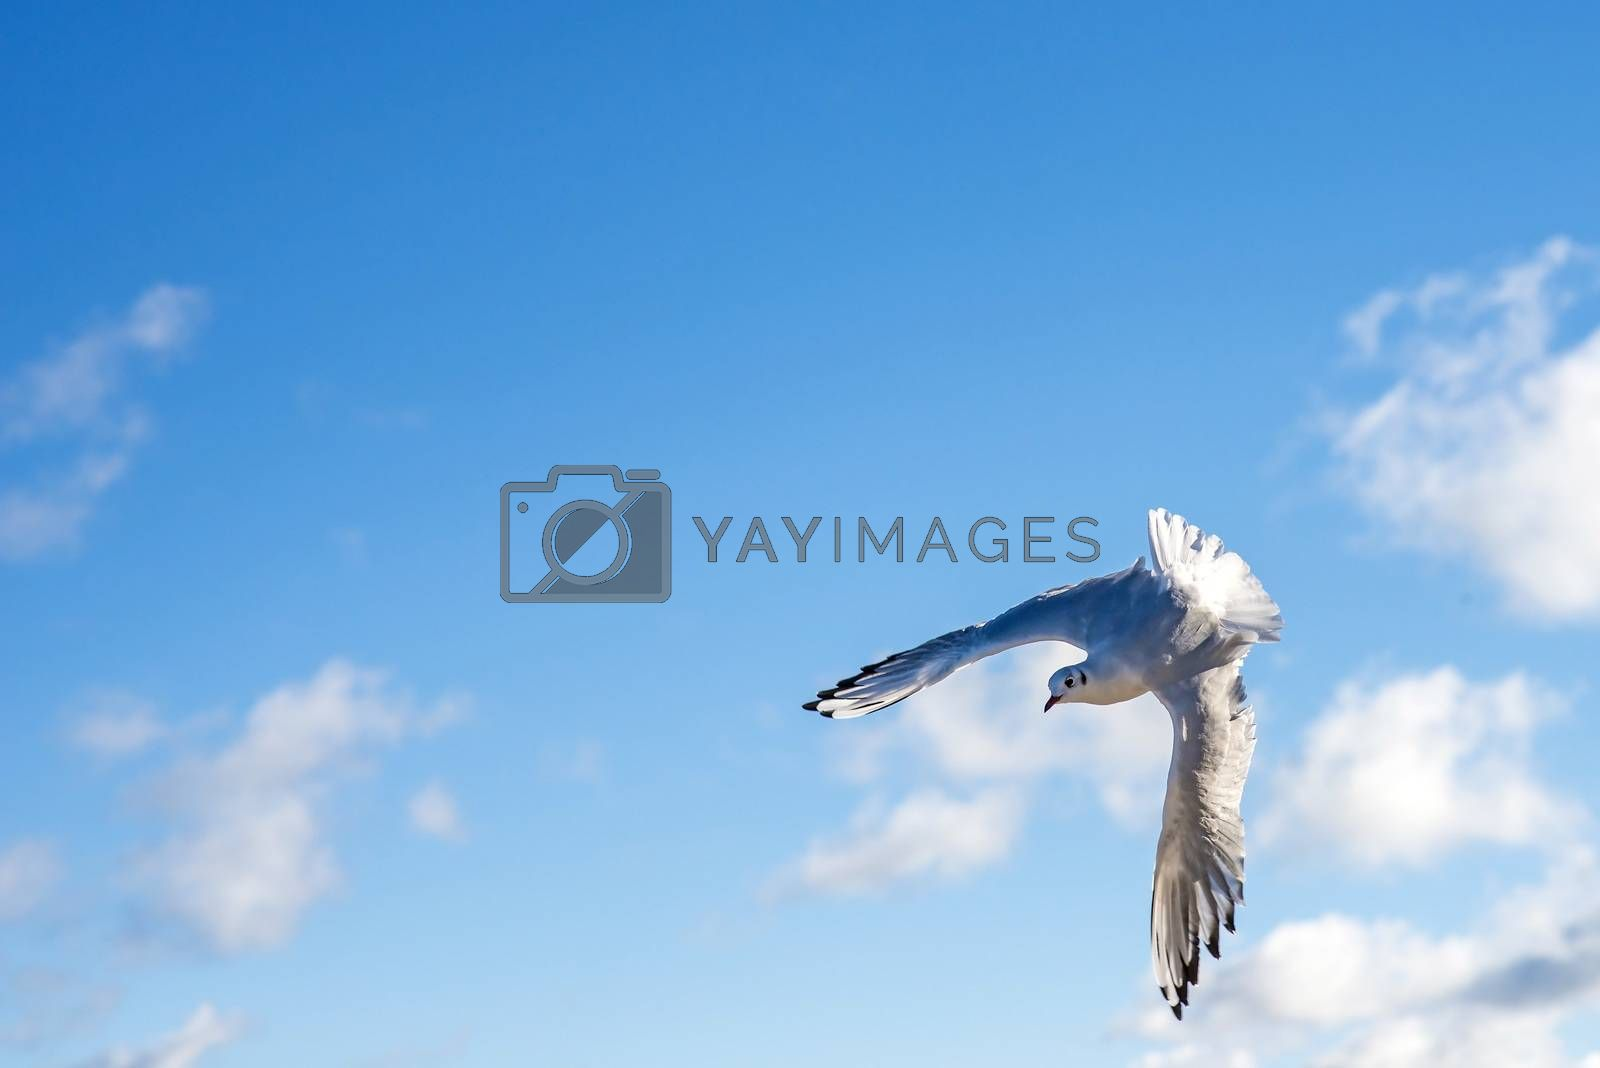 Black-headed gull flying by bremse